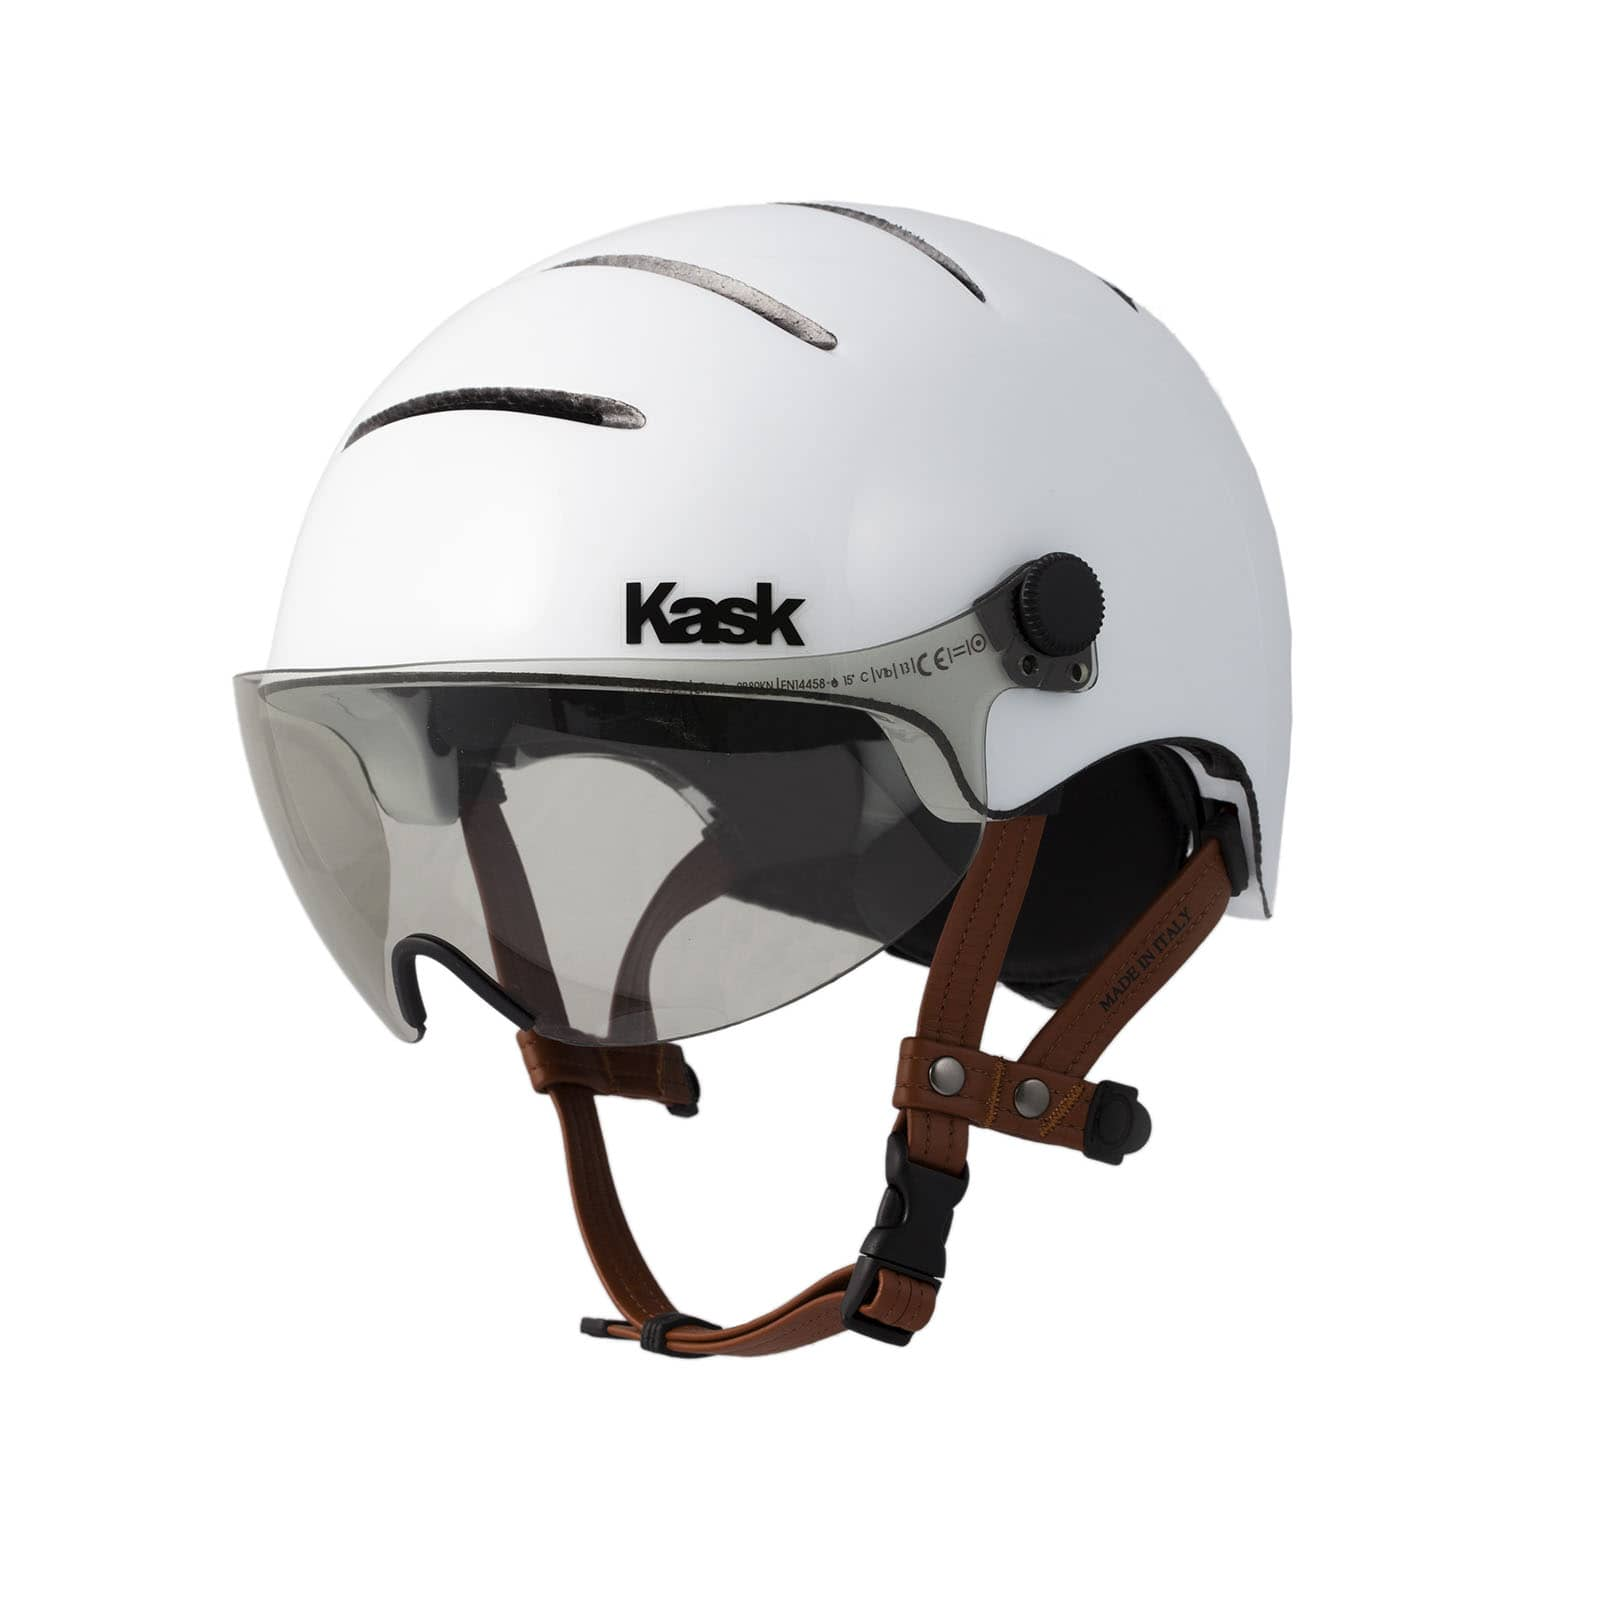 a75e69e432f Urban Cycling Helmet with Leather Straps and Visor - LIFESTYLE ...